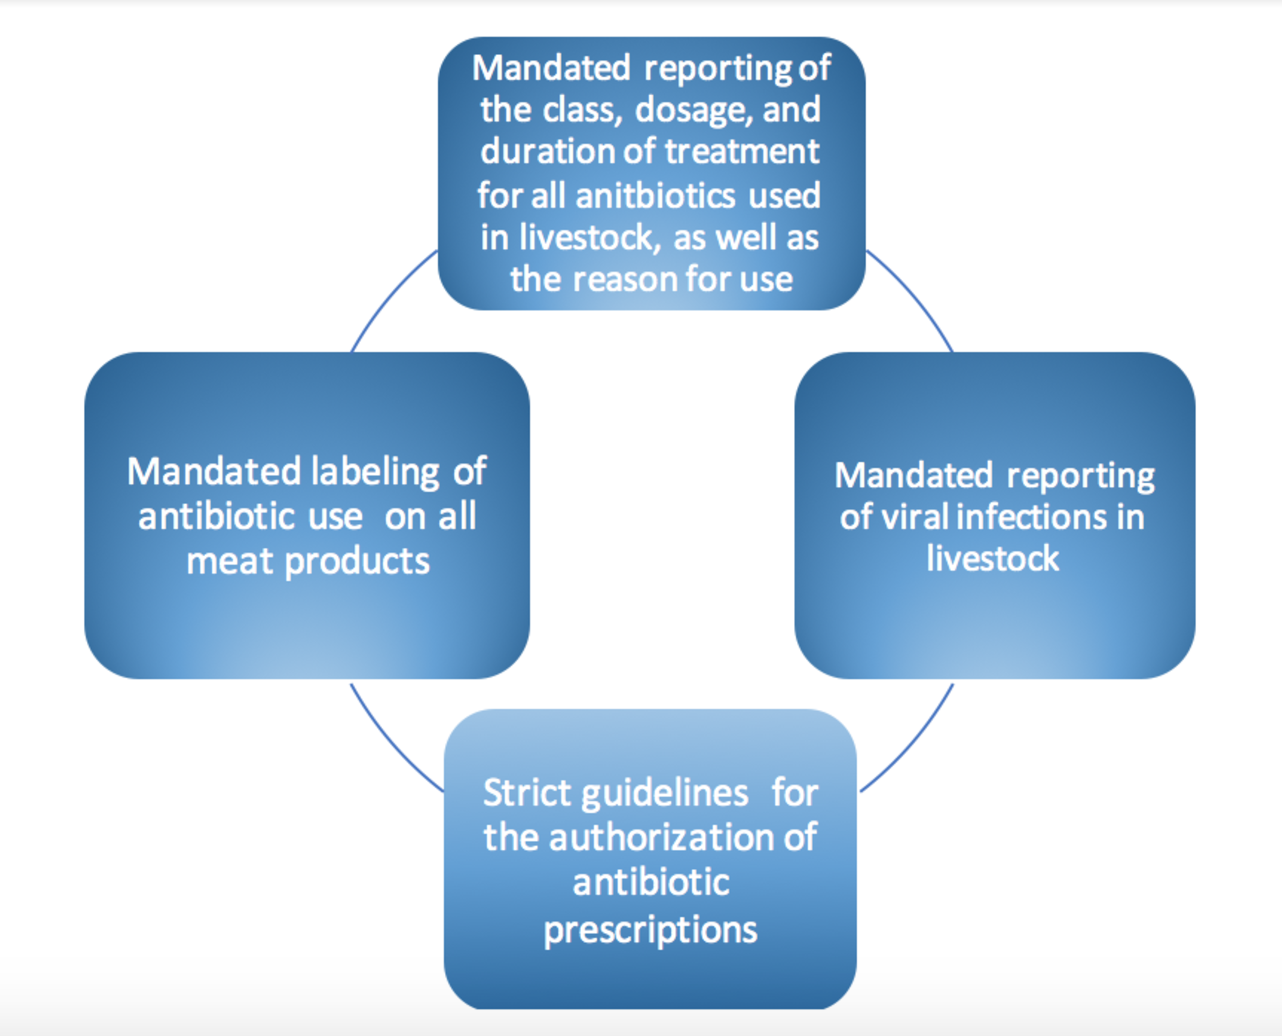 Recommendations for the Responsible Use of Antibiotics in Livestock